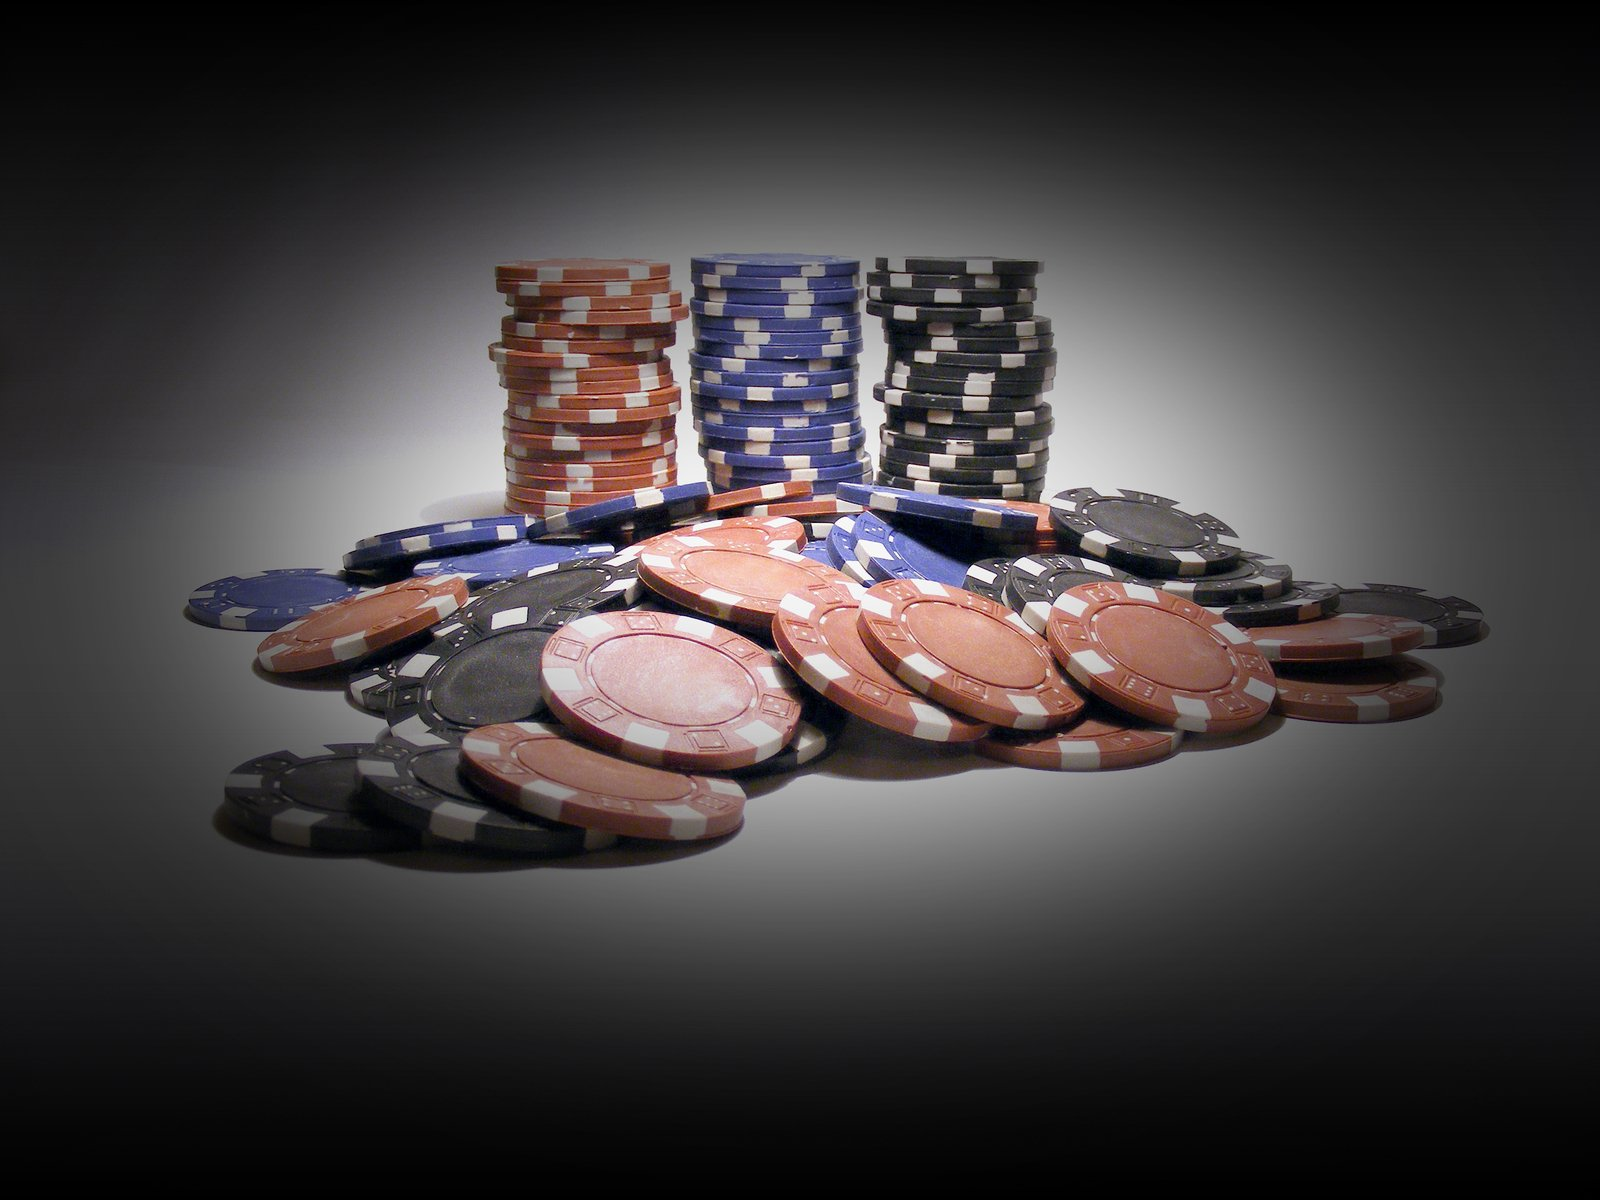 Free Poker Chips And Cards Stock Photo Freeimages Com